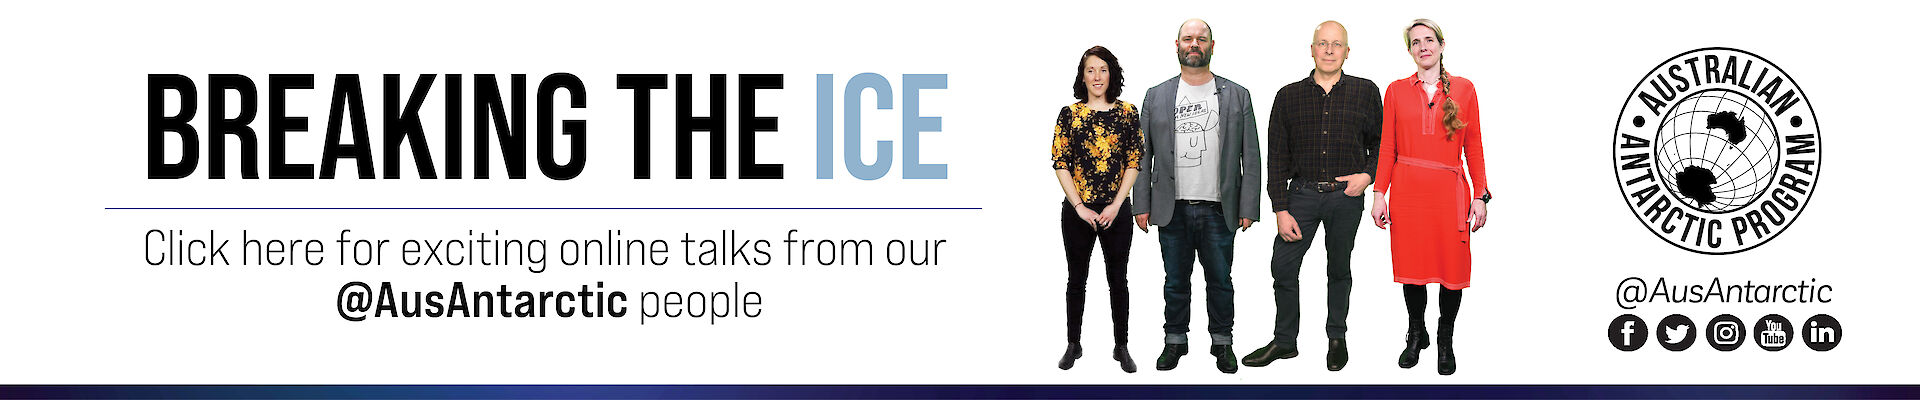 Breaking the Ice — join us during National Science Week for online presentations from our leading scientists